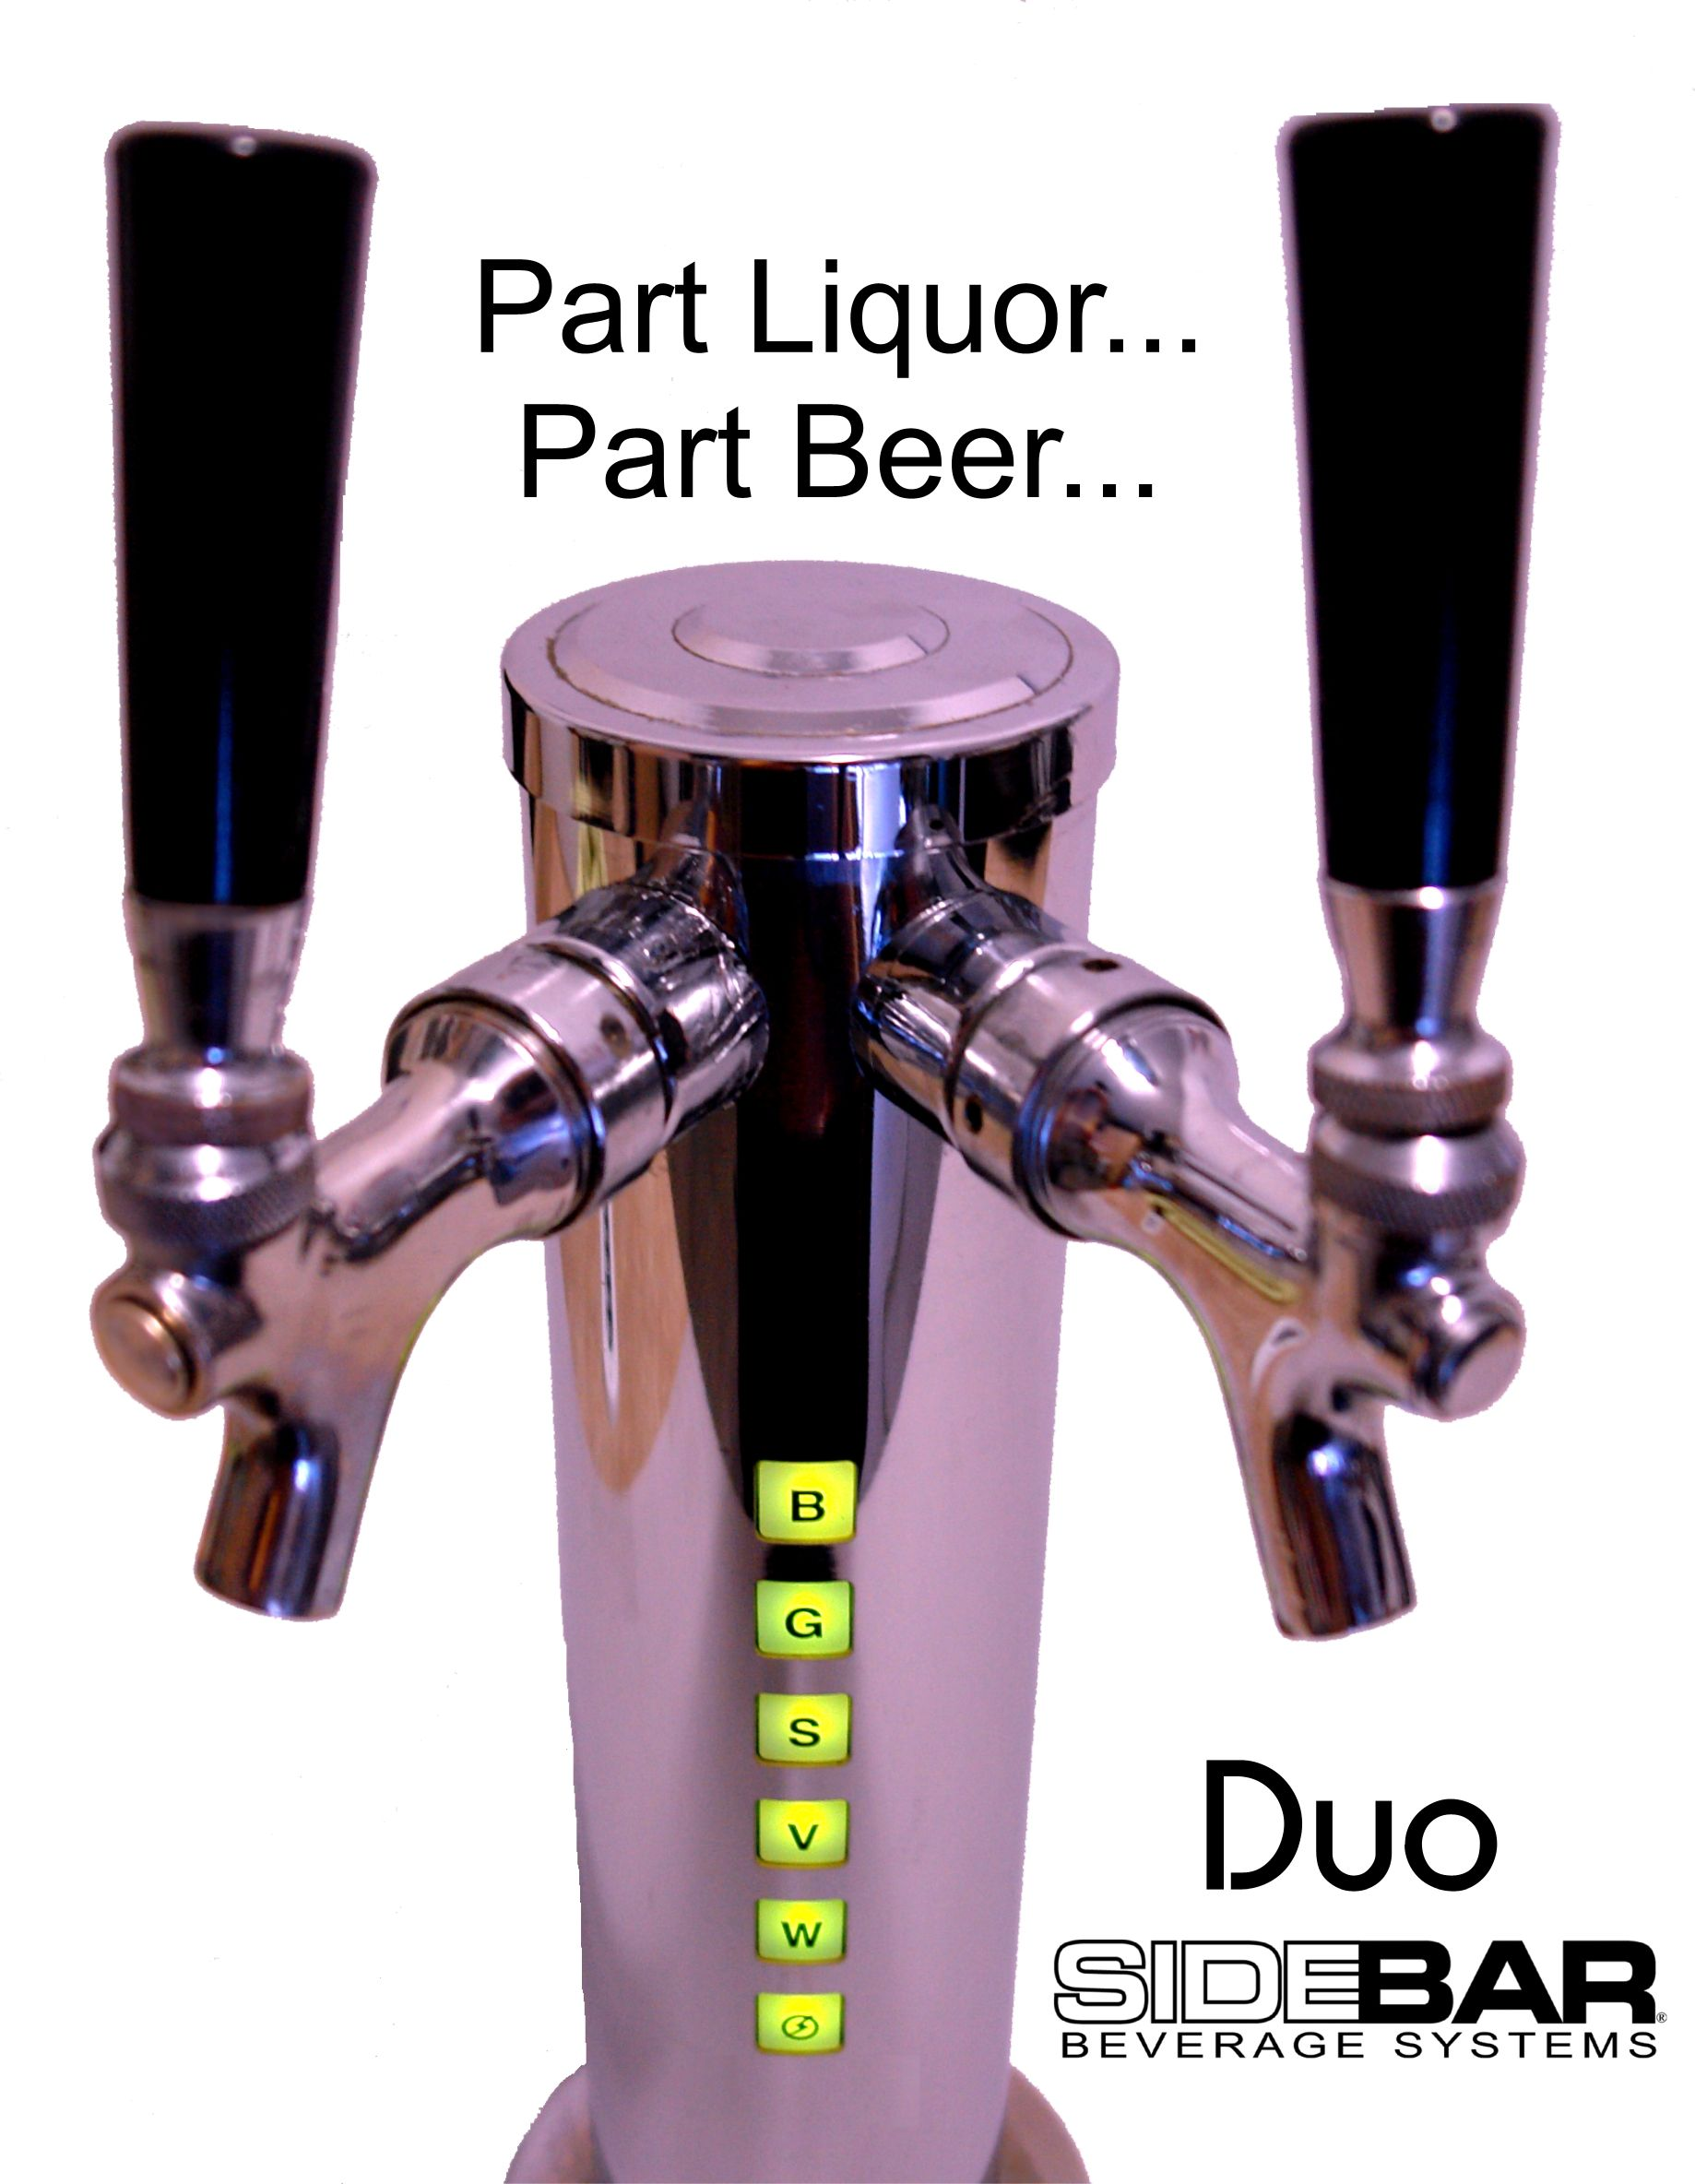 Sidebar Duo Liquor And Beer Dispensing Tower Serve Your Favorite Draft Along With 5 Diffe Spirits Wines Juices Or Non Carbonated Mixers All From